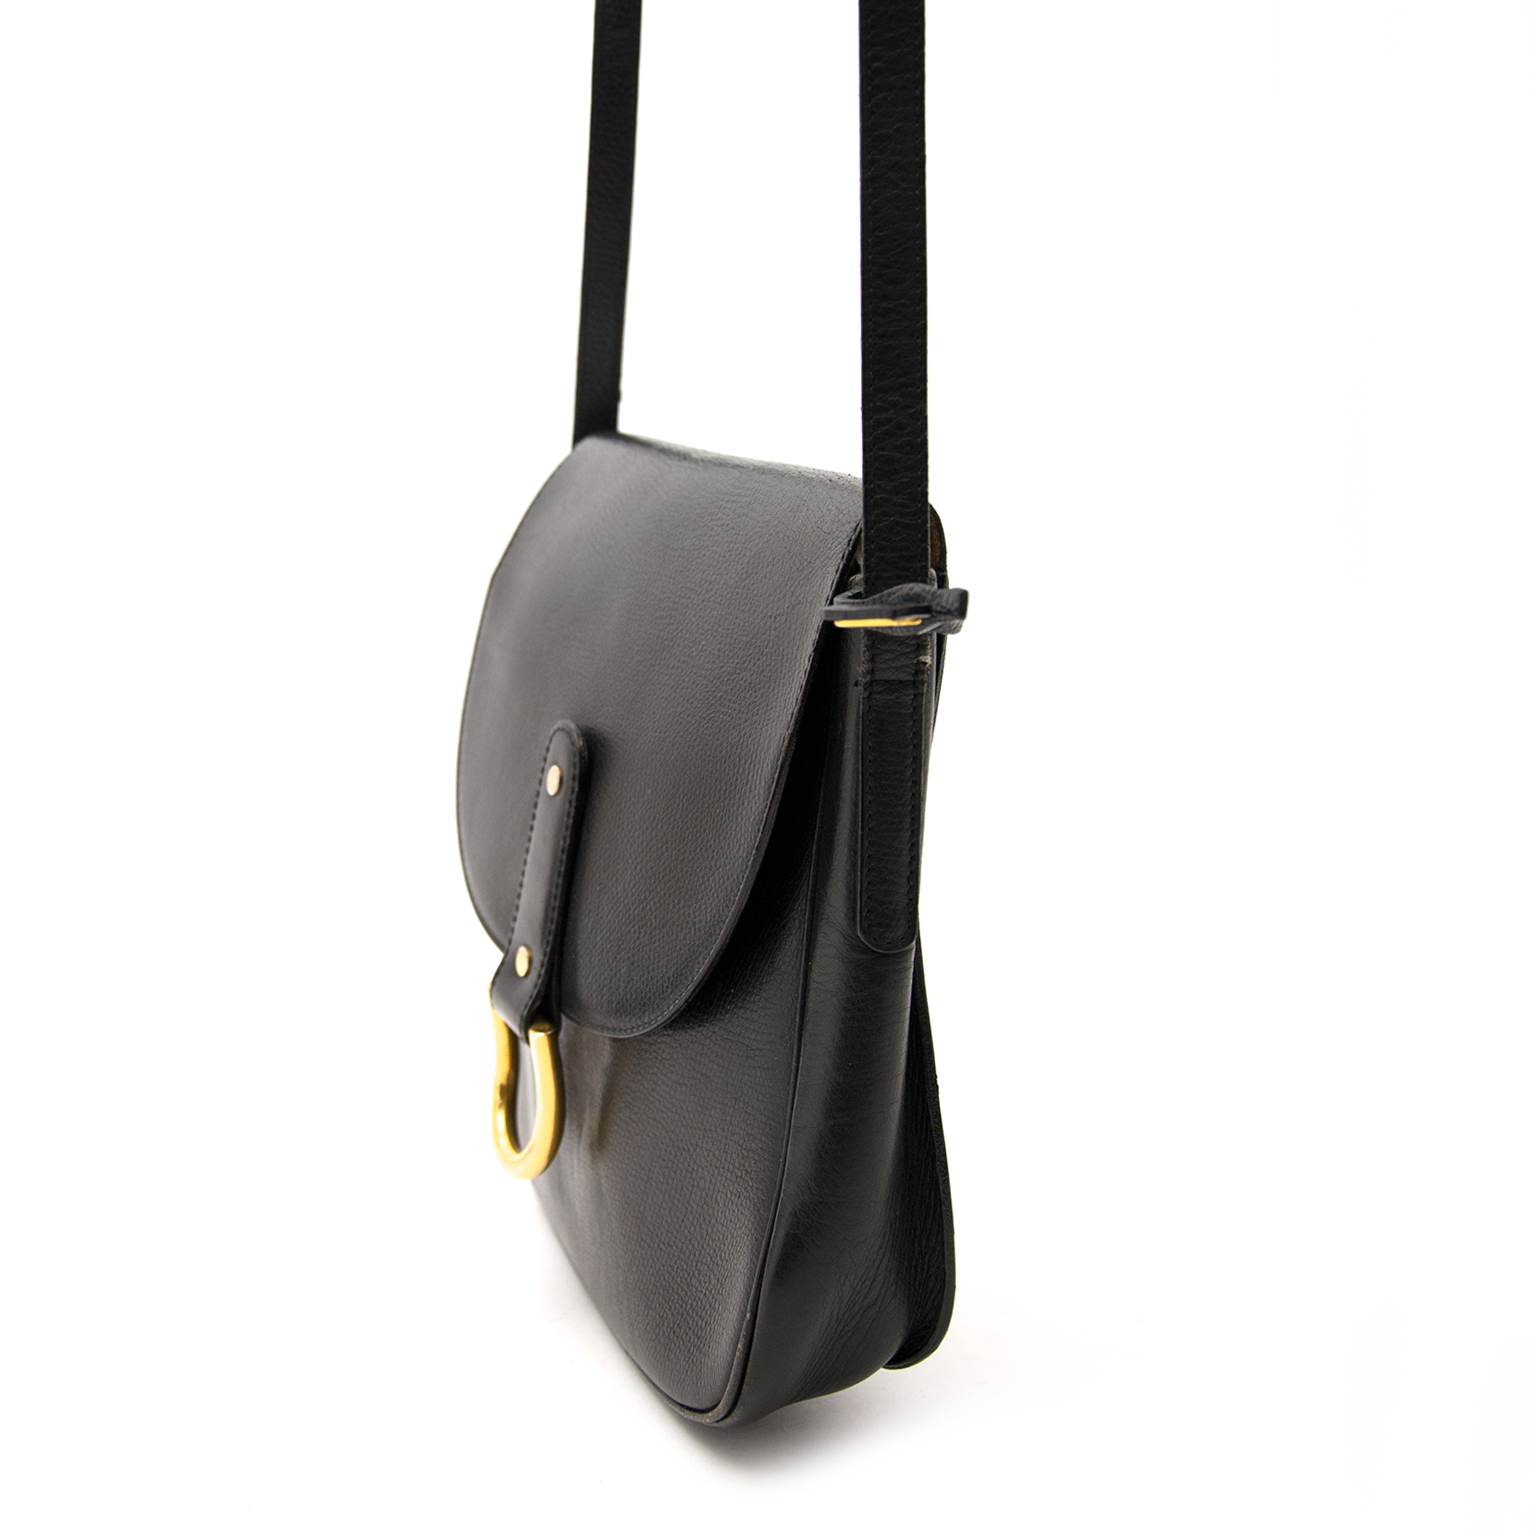 Buy a secondhand Delvaux black crossbody bag online